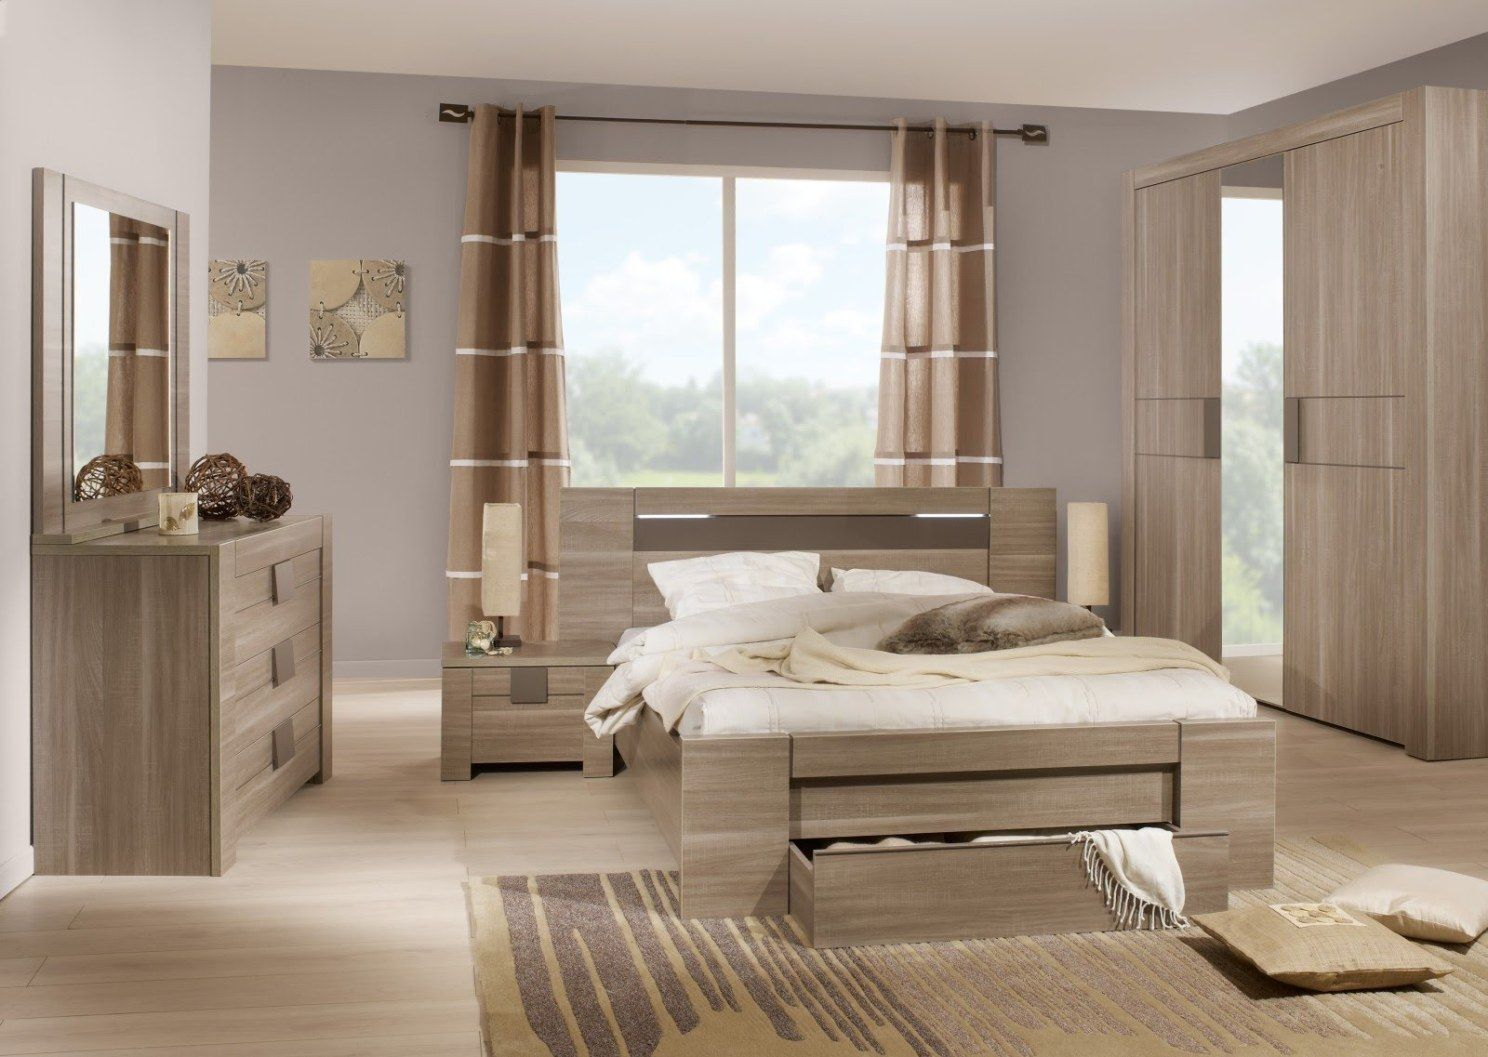 Master bedroom modern  Contemporary Bedroom Furniture u Simplicity and Neatness Can Say A